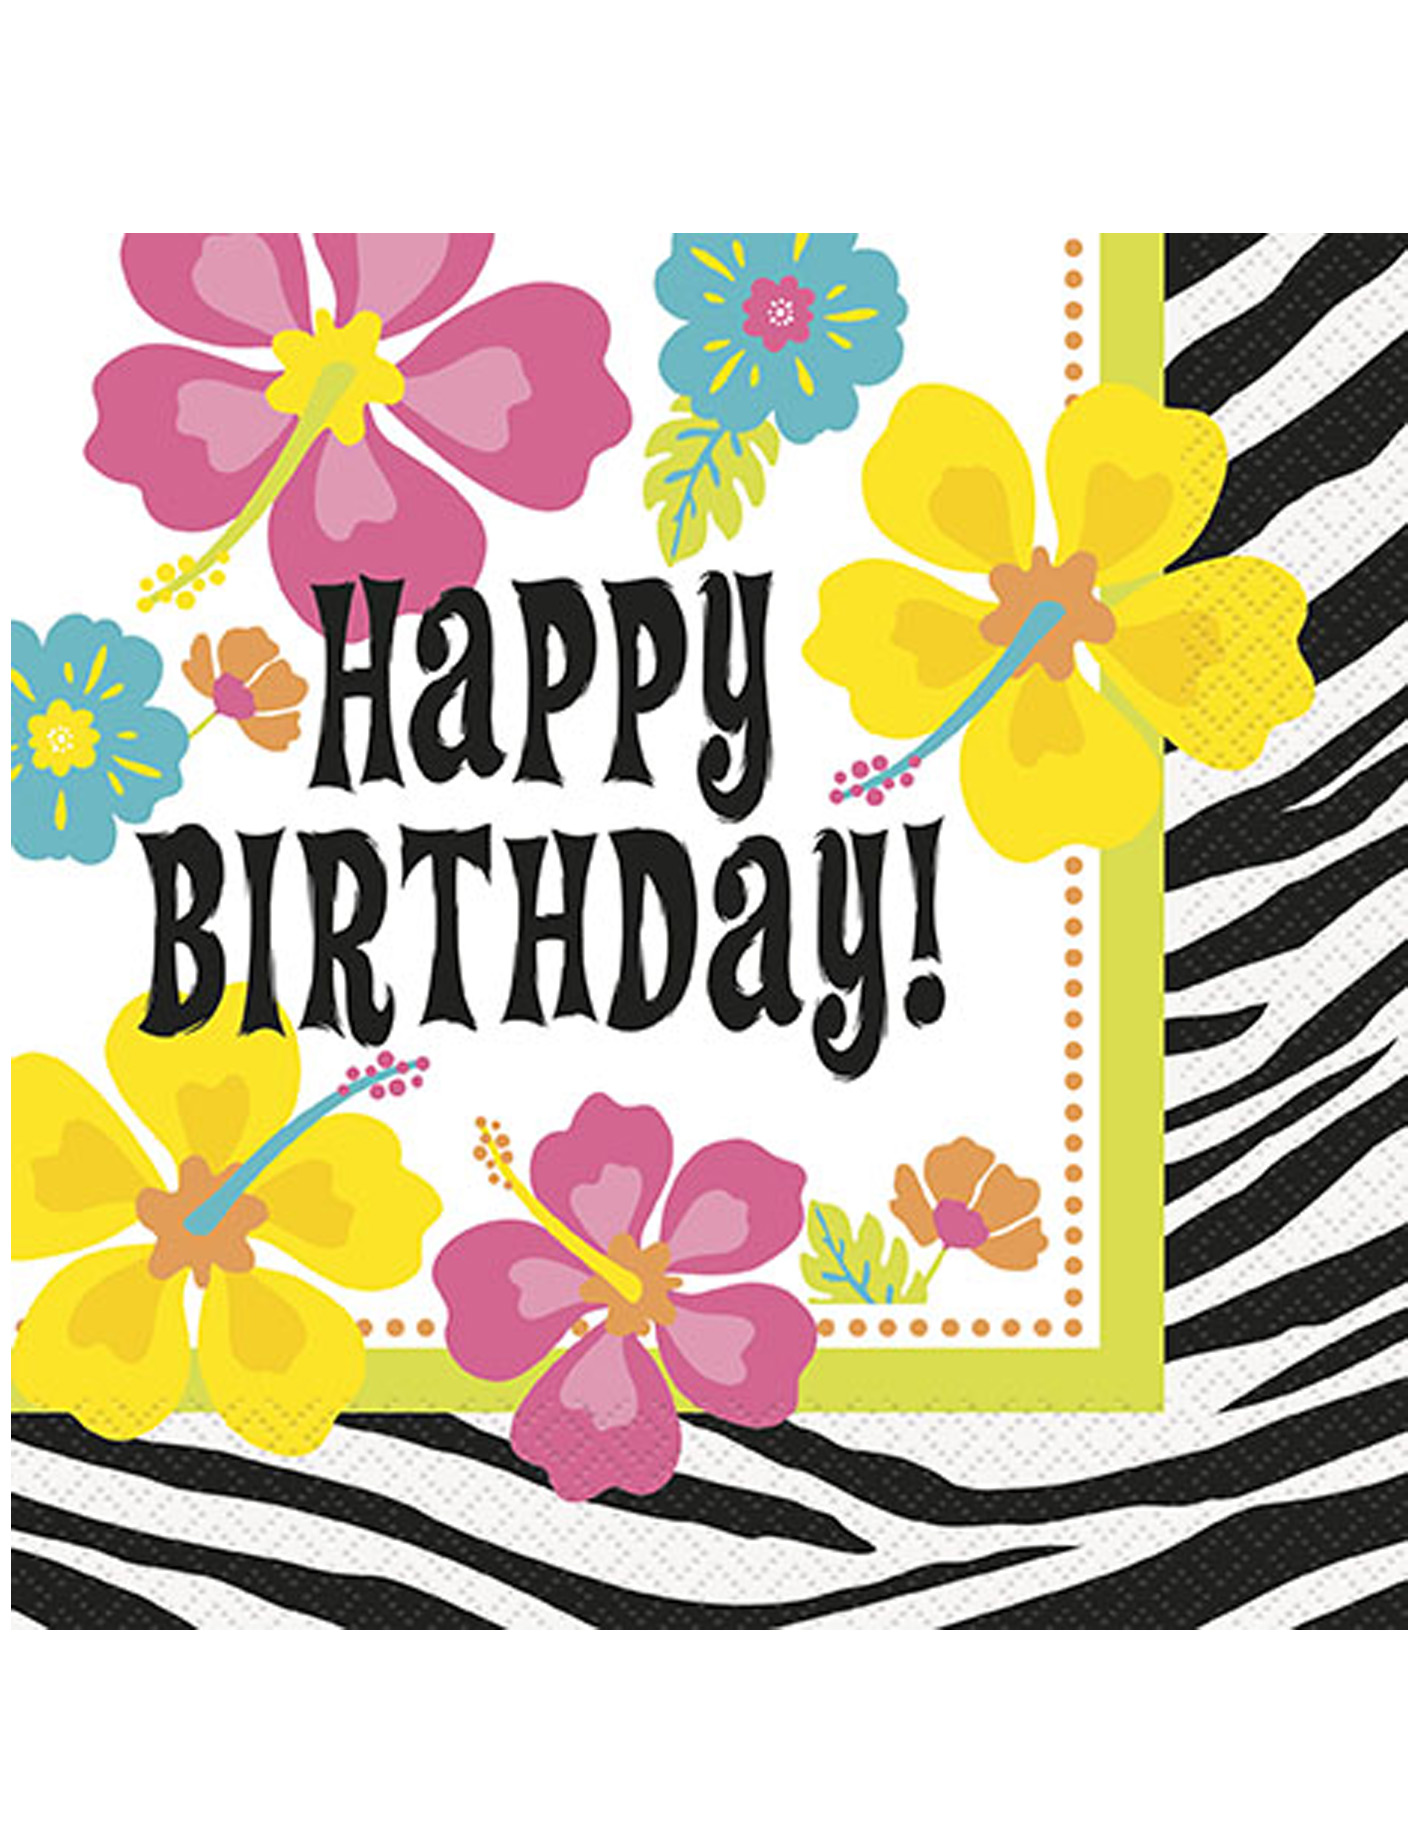 Decoration Anniversaire Zebre : Serviettes en papier happy birthday hibiscus zébré